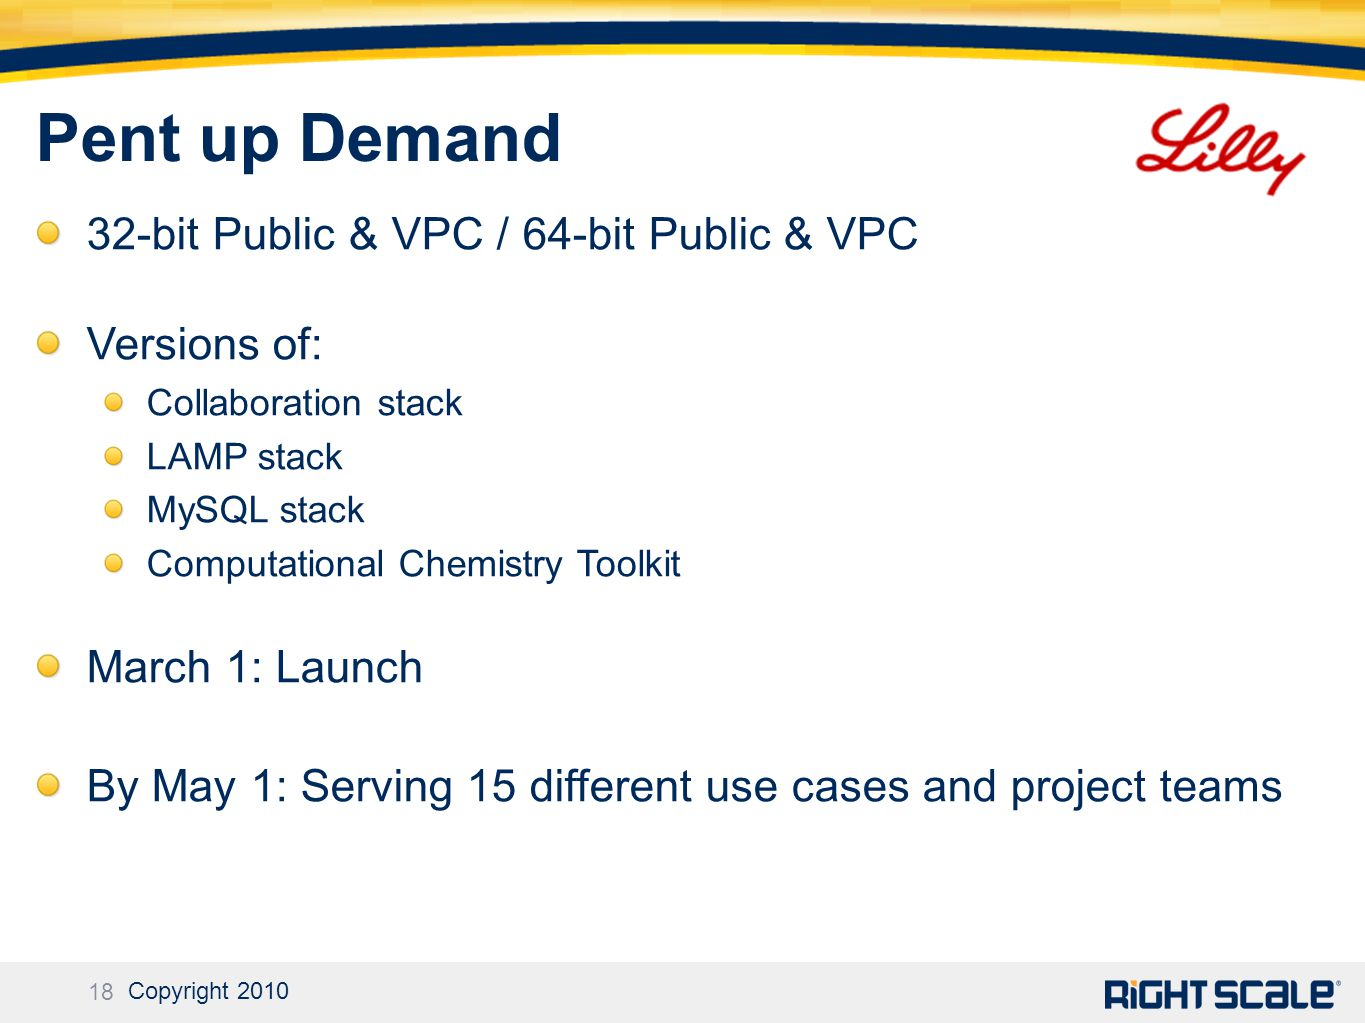 18 Copyright 2010 Pent up Demand 32-bit Public & VPC / 64-bit Public & VPC Versions of: Collaboration stack LAMP stack MySQL stack Computational Chemistry Toolkit March 1: Launch By May 1: Serving 15 different use cases and project teams